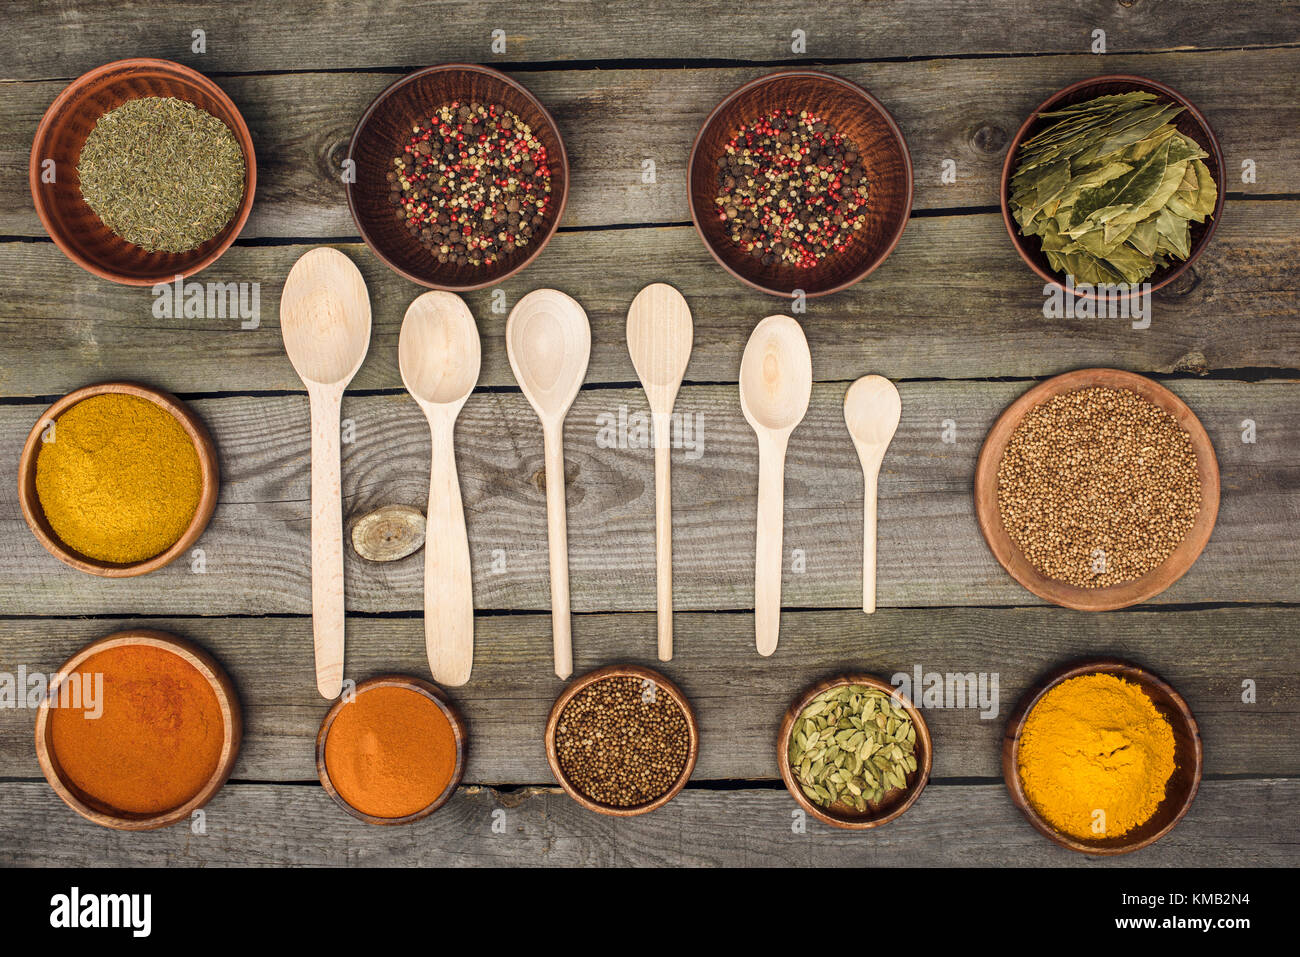 wooden spoons among bowls with spices - Stock Image